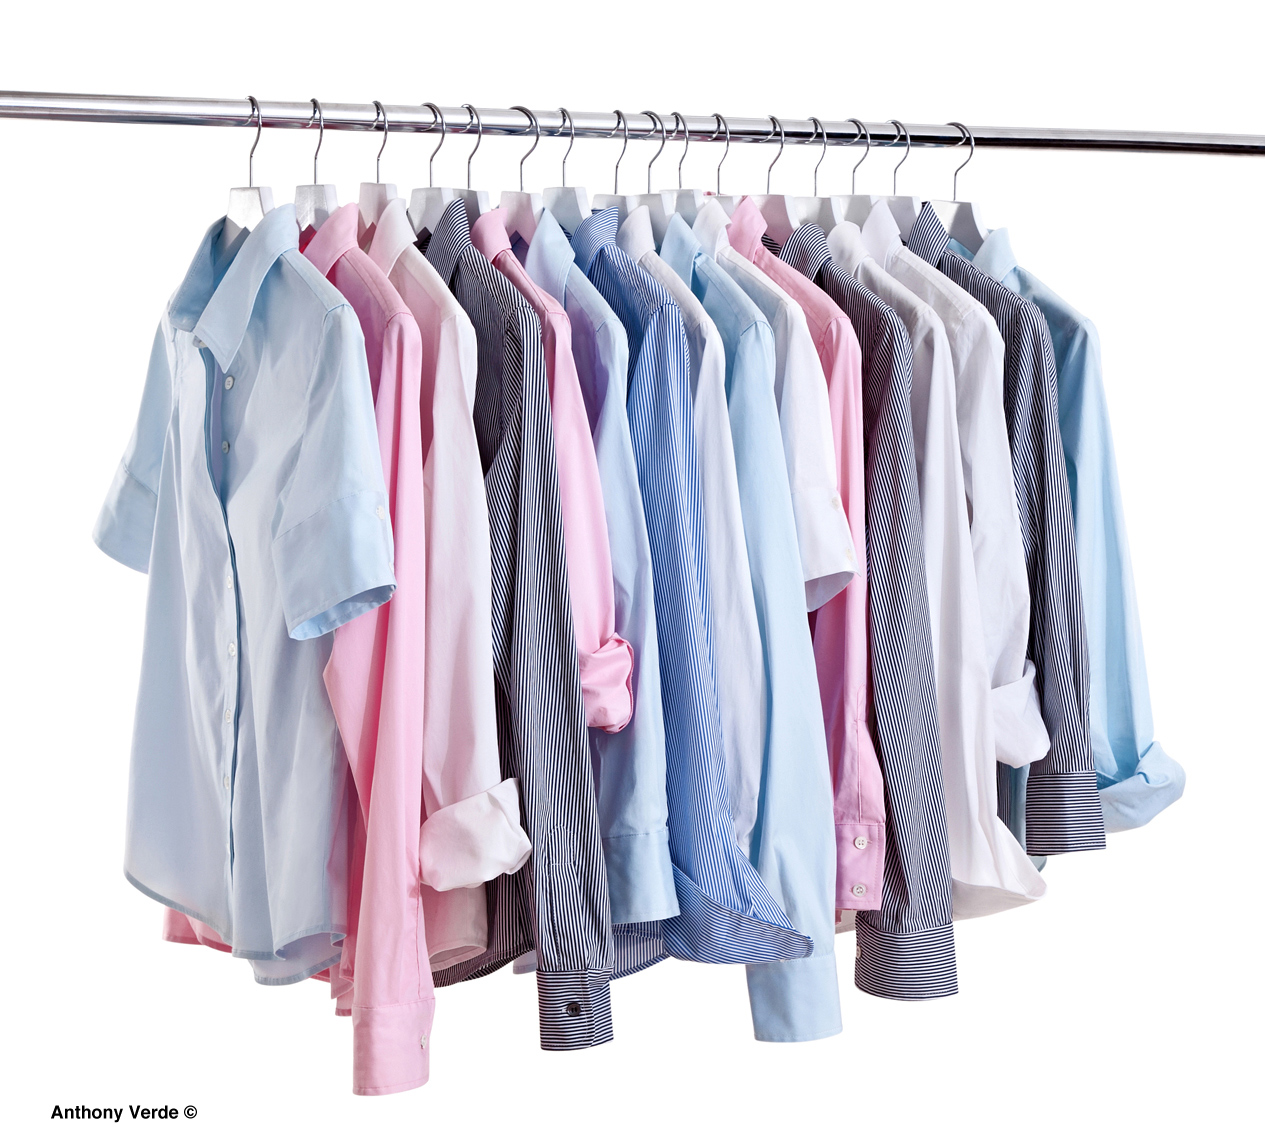 shirts-on-rack-product-photography